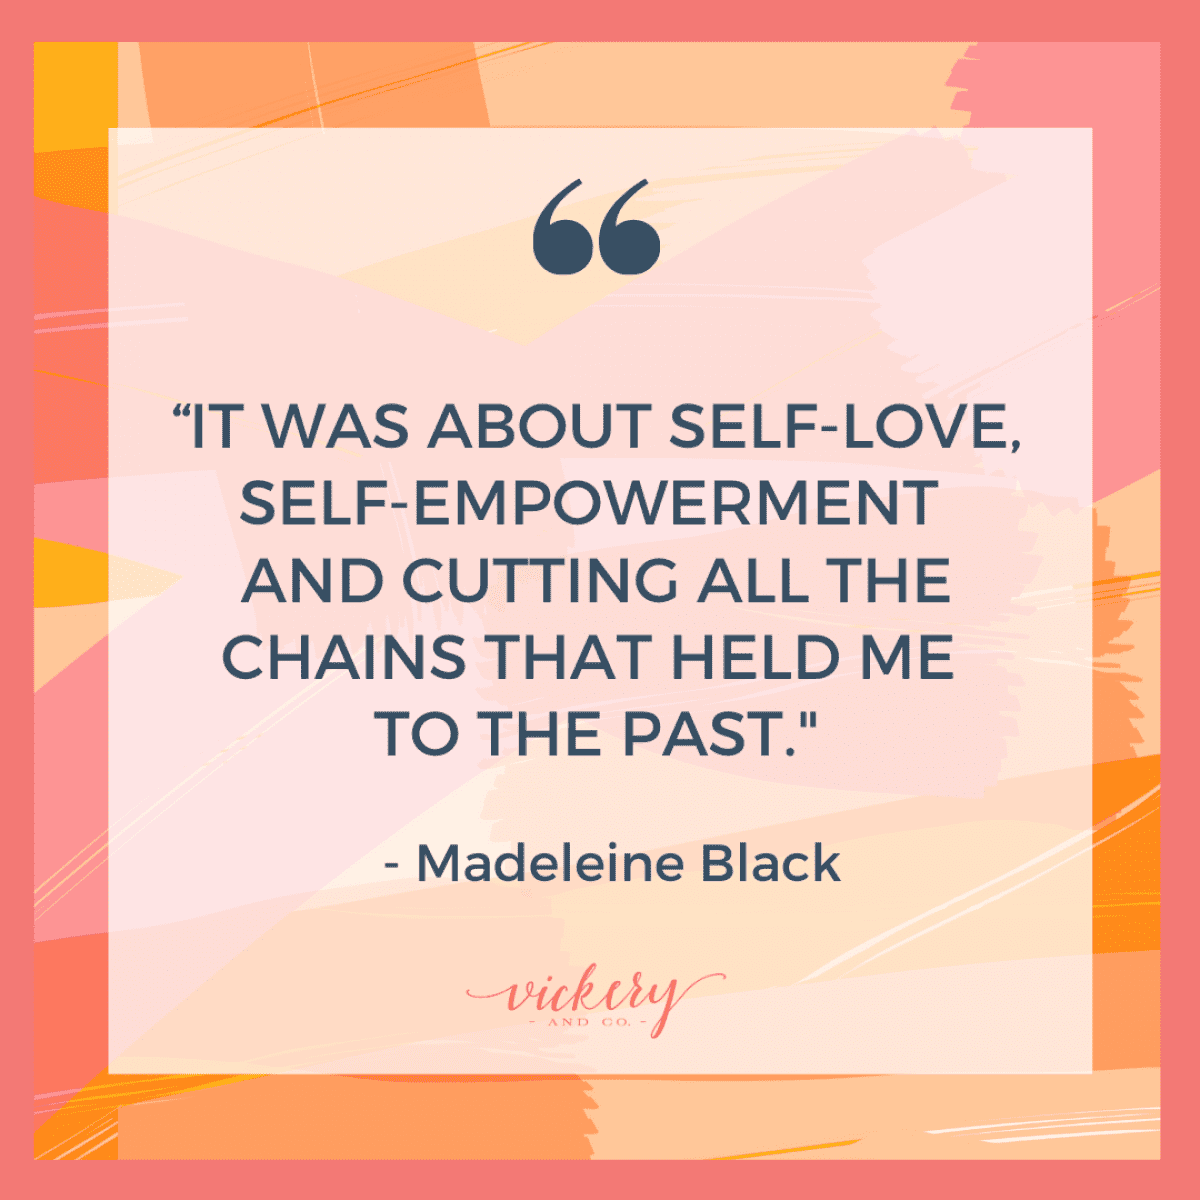 Forgiveness gave me strength. Madeleine Black joins Heather Vickery on The Brave Files Podcast.